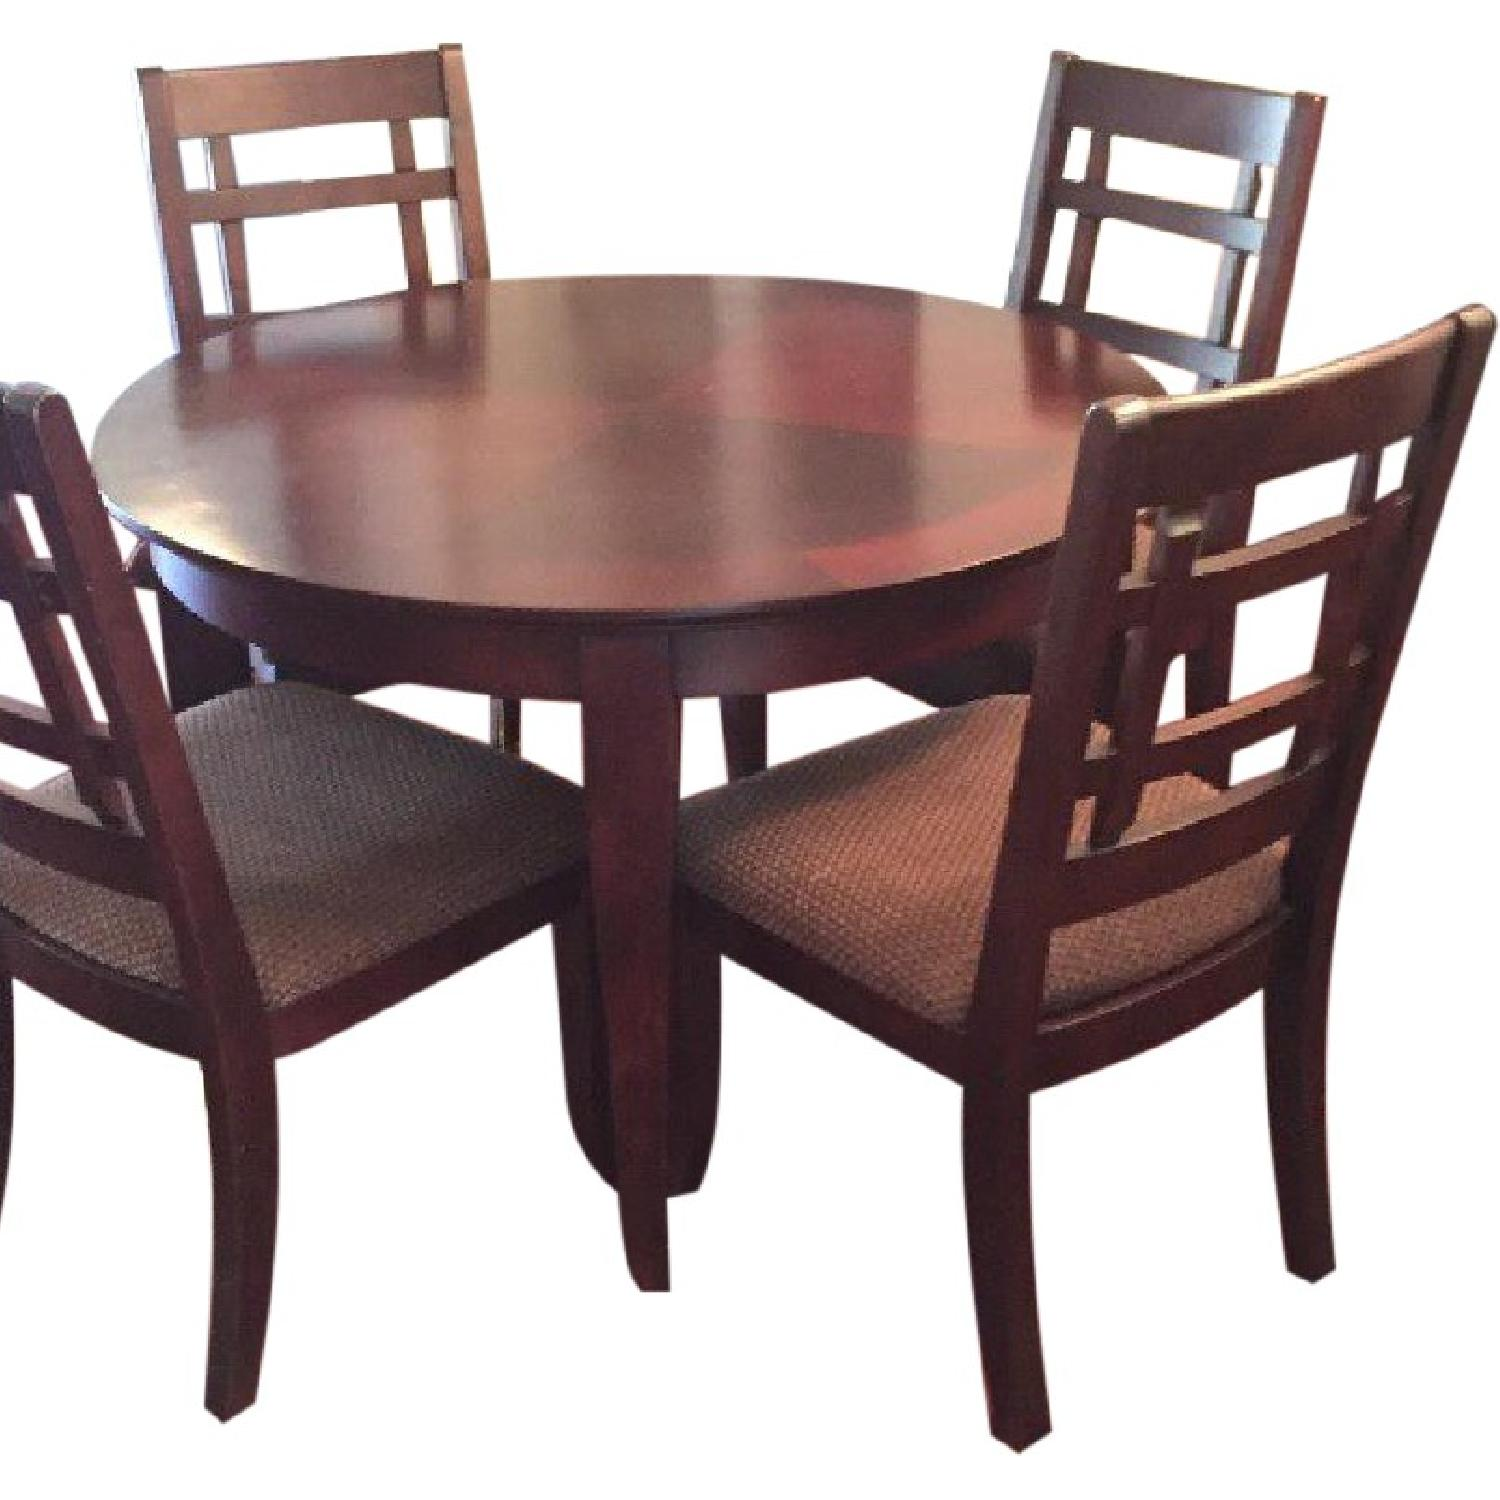 Ashley S Solid Wood Dining Table W 4 Chairs China Cabinet Aptdeco